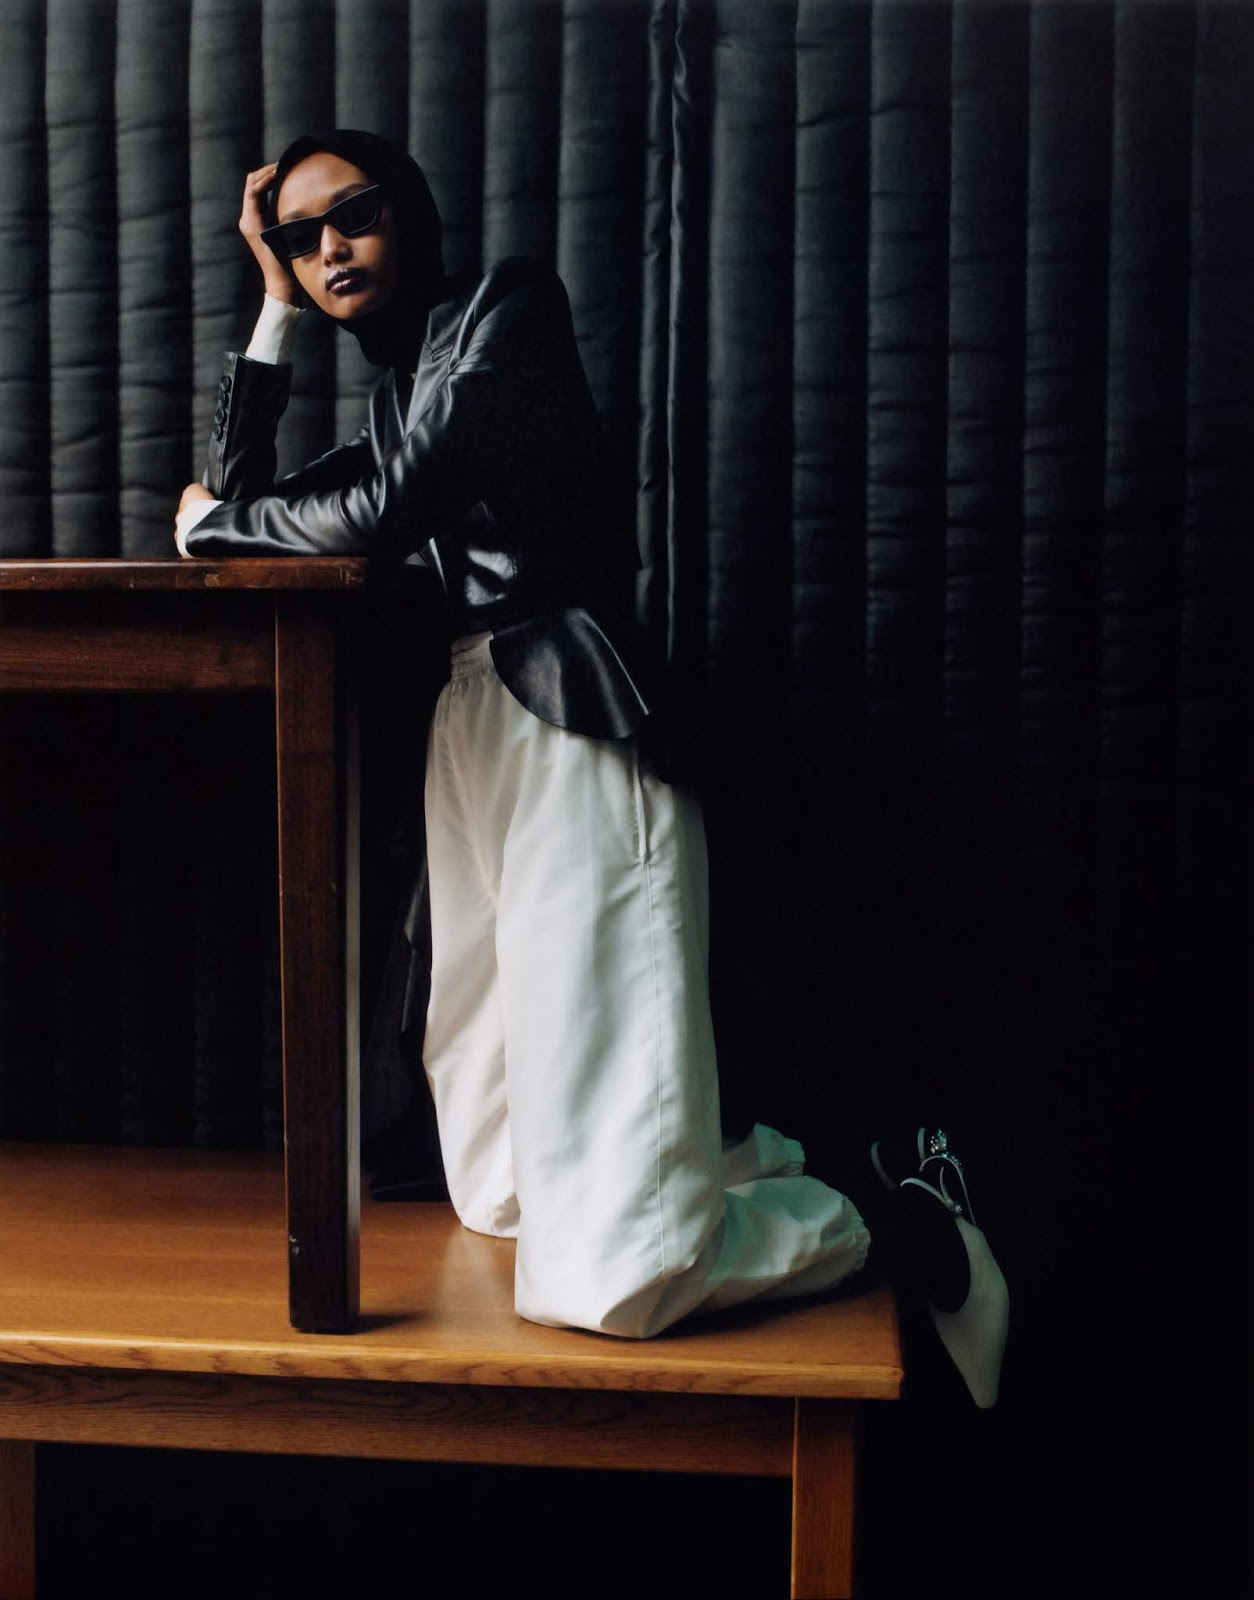 Ugbad Abdi by Zoe Ghertner. Jacket Alexander McQueen. Rollneck The Row. Tracksuit Bottoms Stylist's Own. Tights WOLFORD. Headscarf Berwick St. Cloth Shop. Sunglasses Gentle Monster. Shoes Yuul Yie.